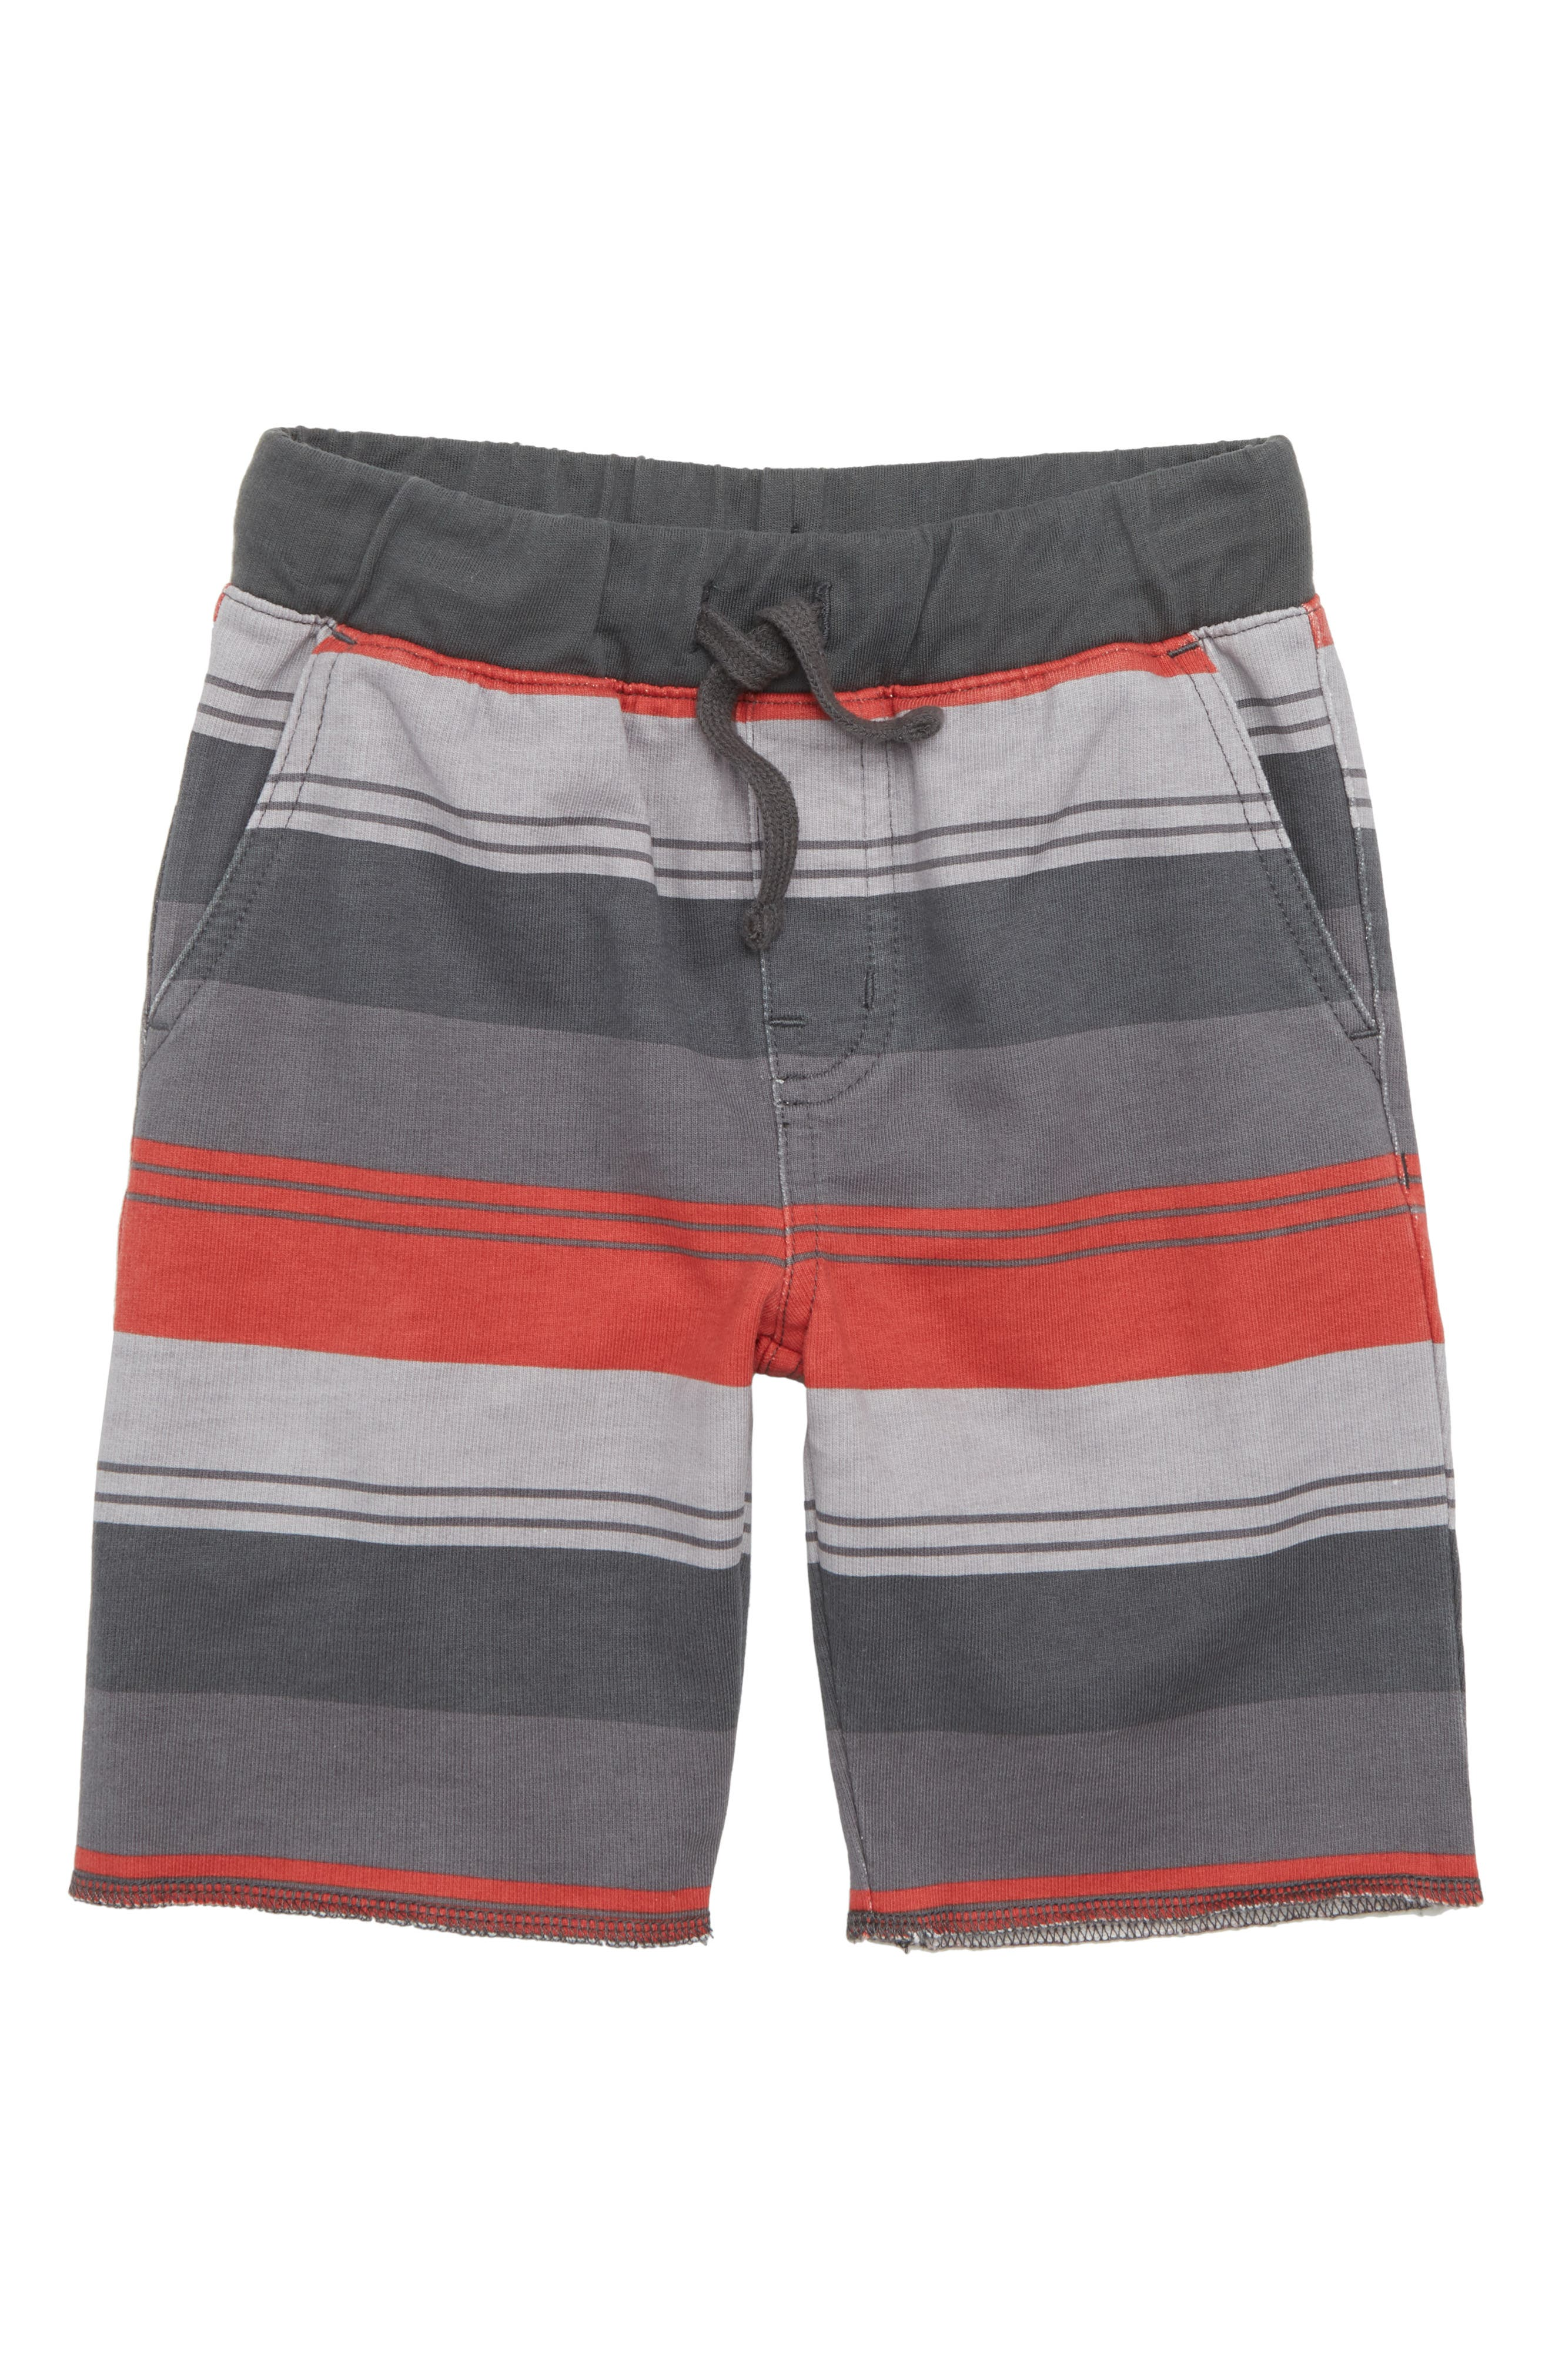 Stripe Cruiser Shorts,                             Main thumbnail 1, color,                             023